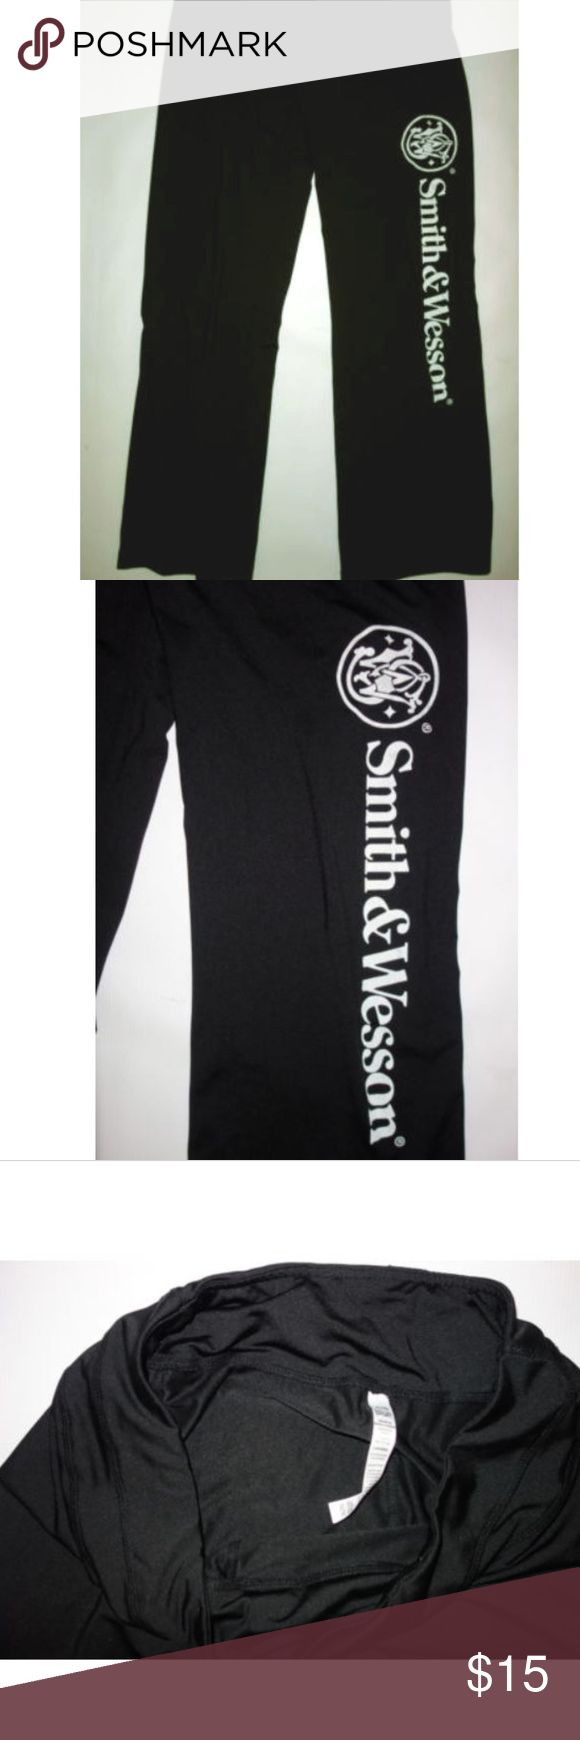 """Smith & Wesson Yoga Pants North End Sport Yoga Athletic Pants Women XL Black Smith & Wesson Logo dst Preowned in excellent condition No rips, tears or stains Black with white lettering on the leg Flat waistband Smith & Wesson down the side of the leg Waist measures 18"""" flat across the front Inseam is 36"""" I have other items like this listed Thank you for looking! North End Pants Track Pants & Joggers"""